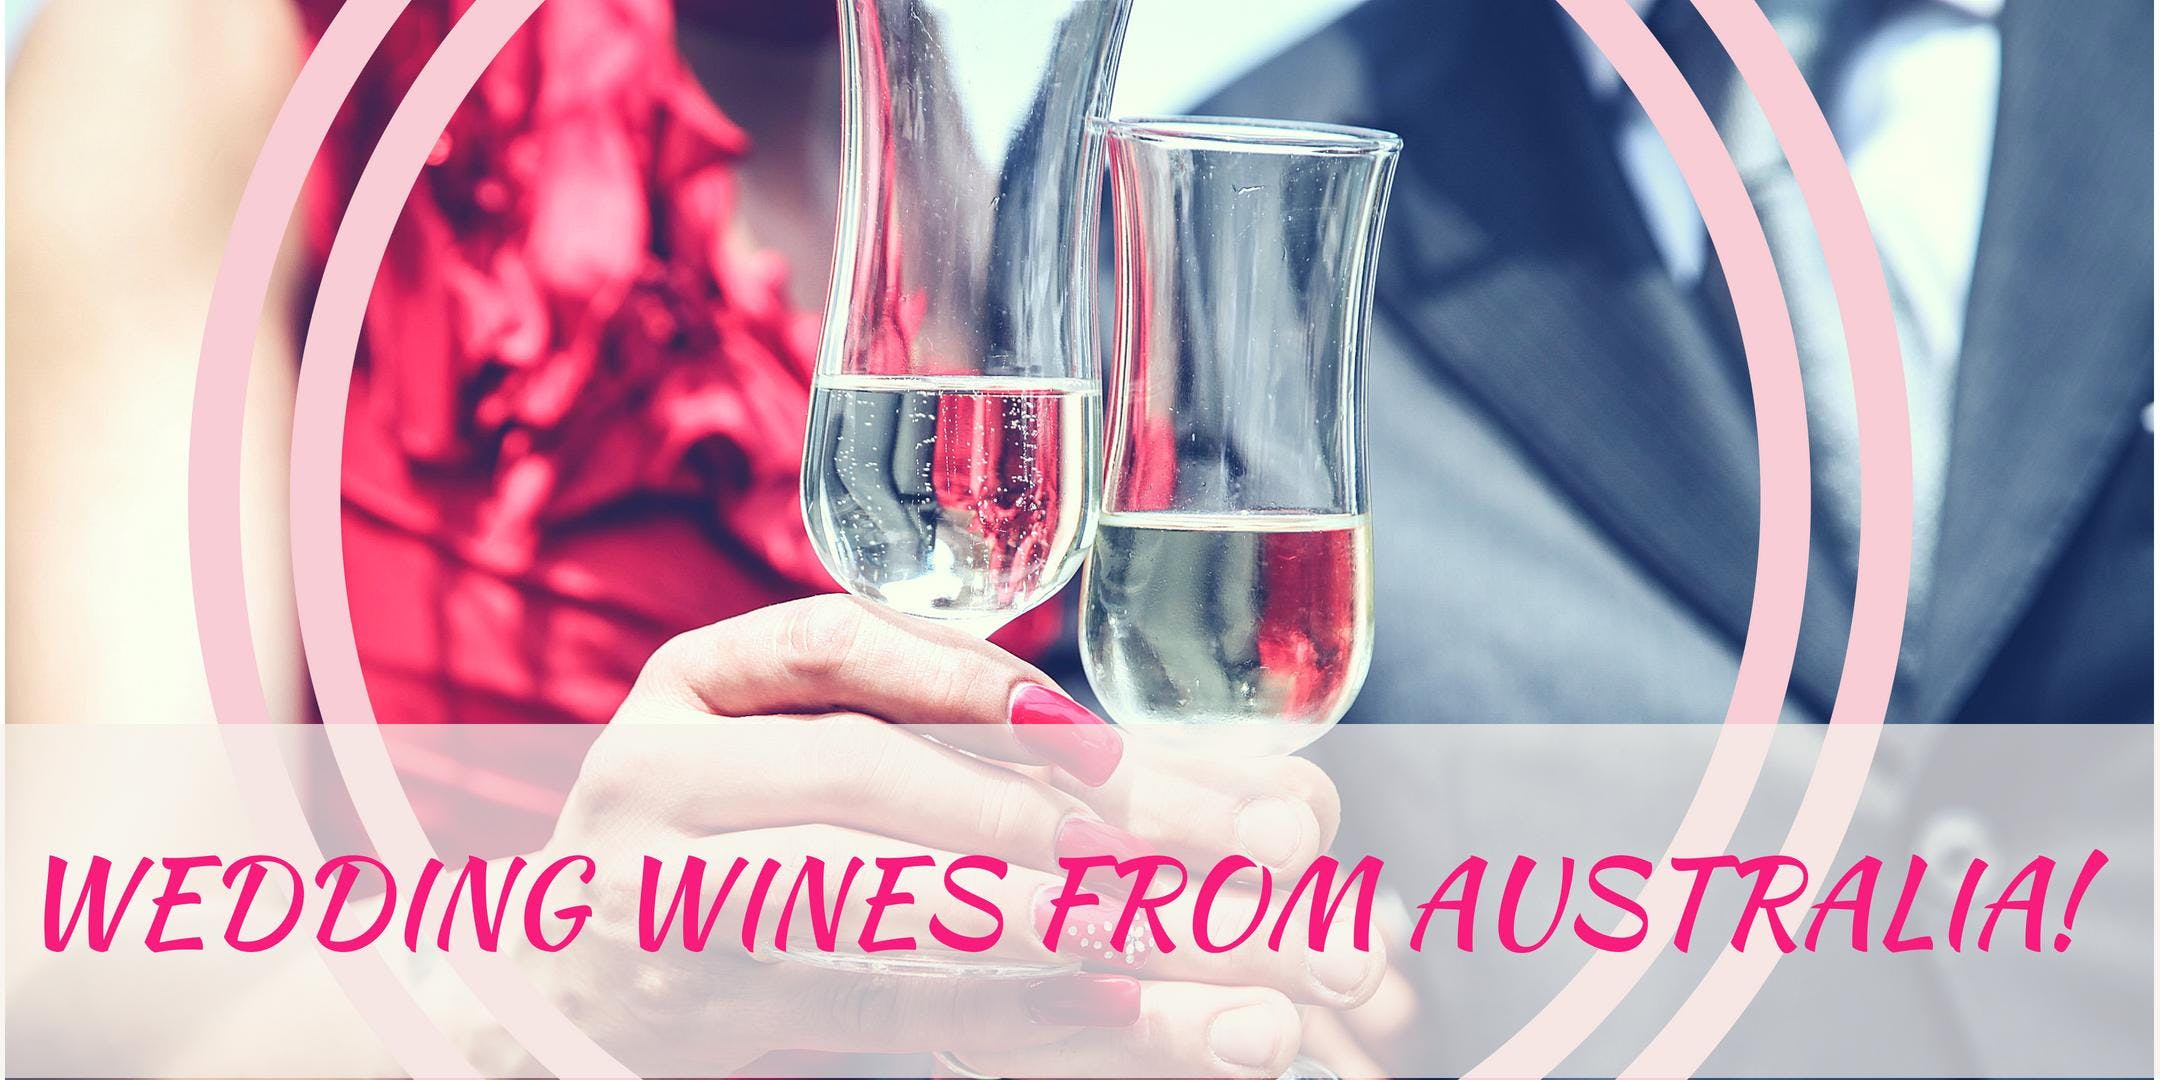 Wedding Wine Selections from Australia!